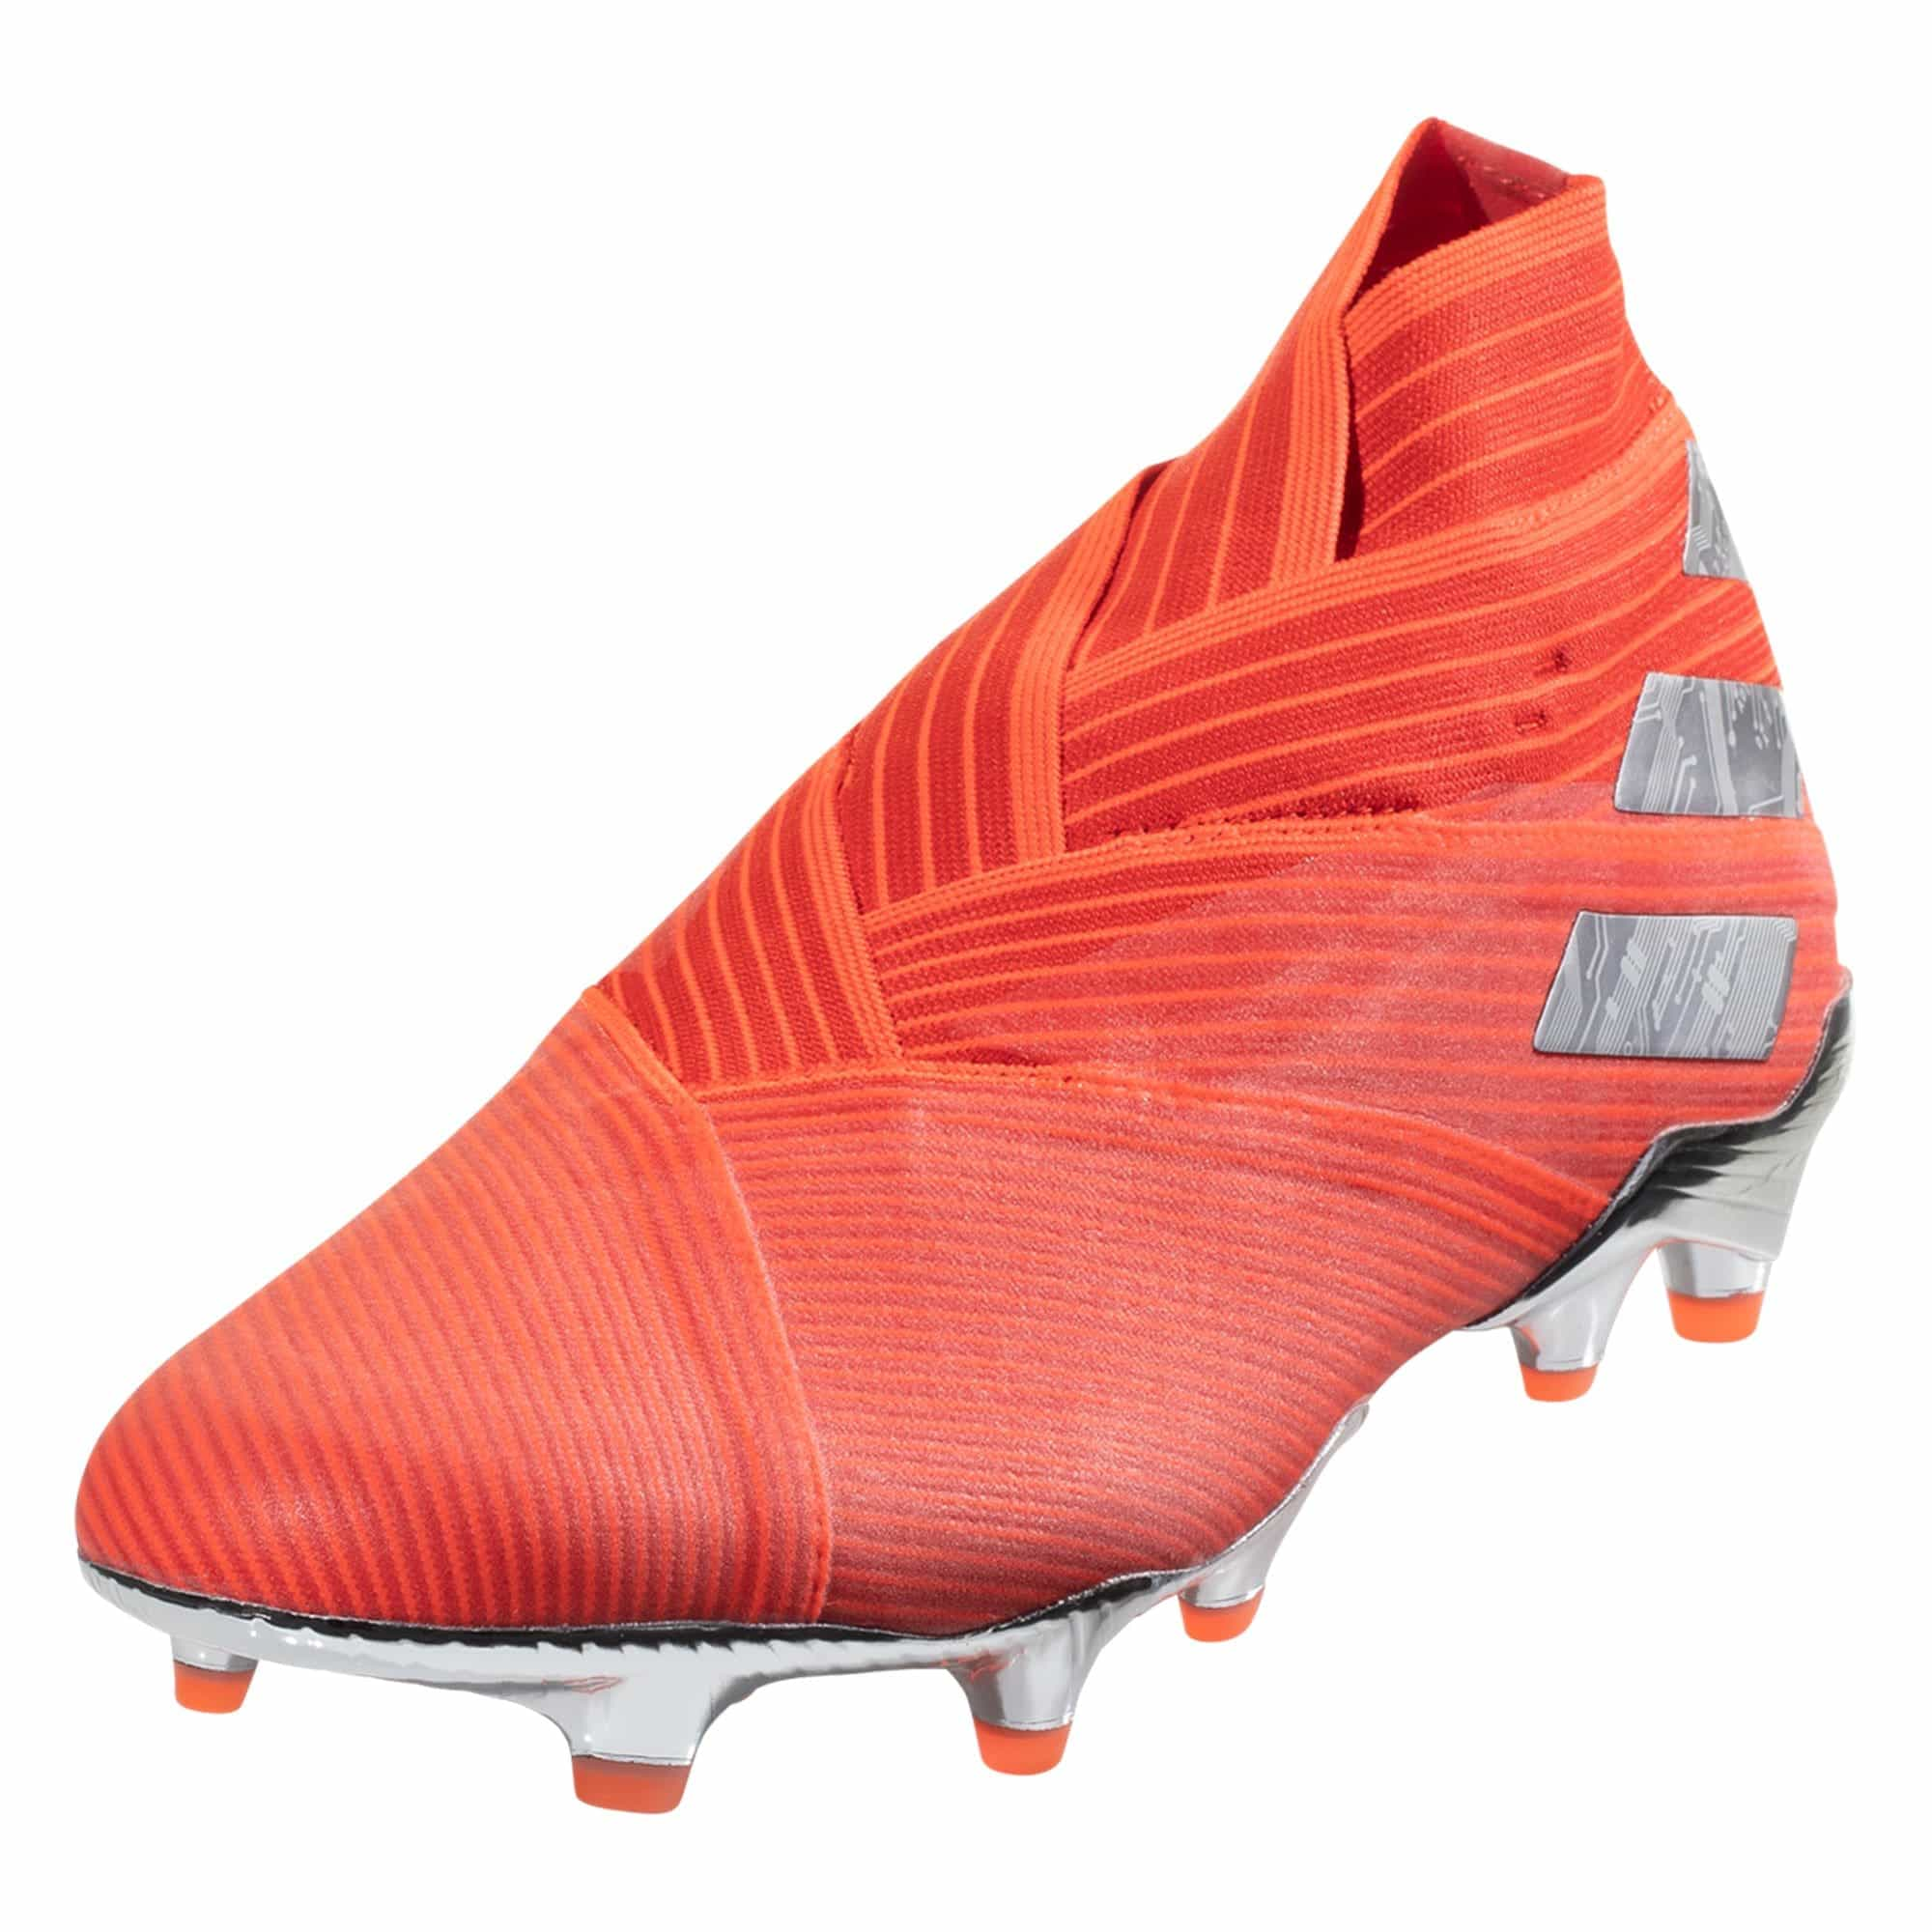 adidas Nemeziz 19+ FG Soccer Cleat - Active Red / Metallic Silver / Solar Red